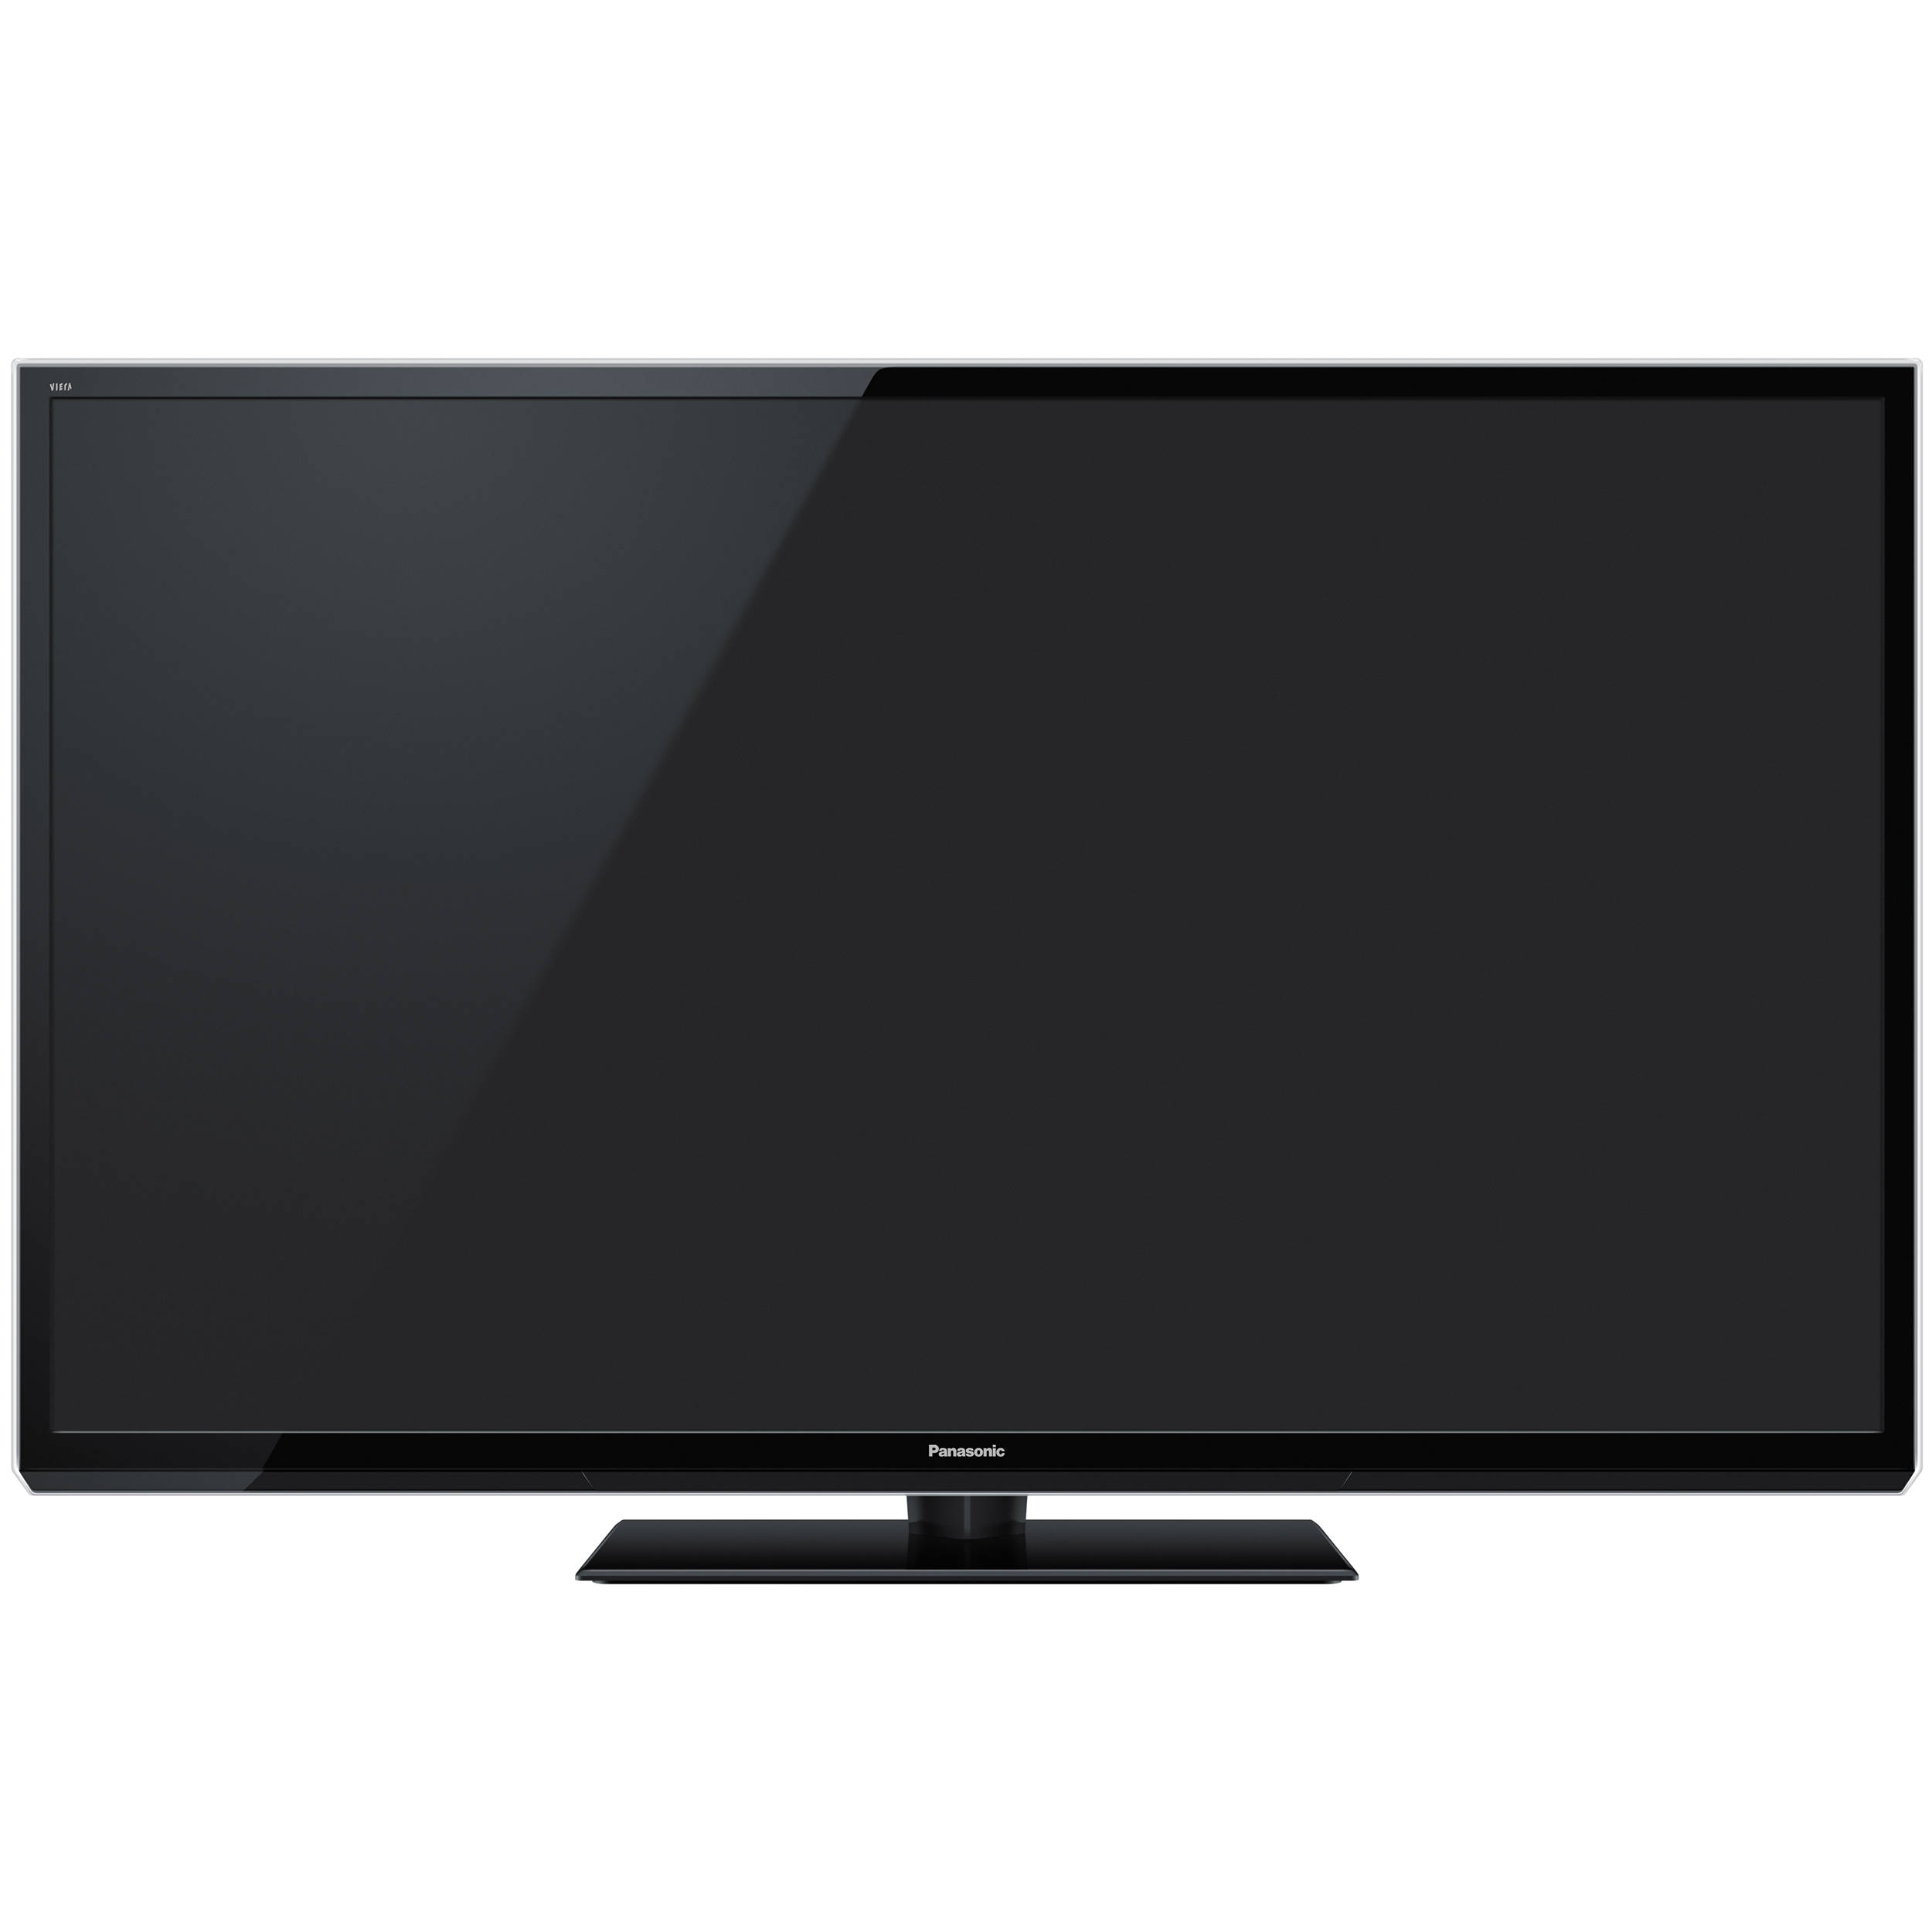 panasonic viera 60 class u50 series full hd tc p60u50 b h rh bhphotovideo com Panasonic Viera 42 Manual Panasonic HDTV 1080I Troubleshooting